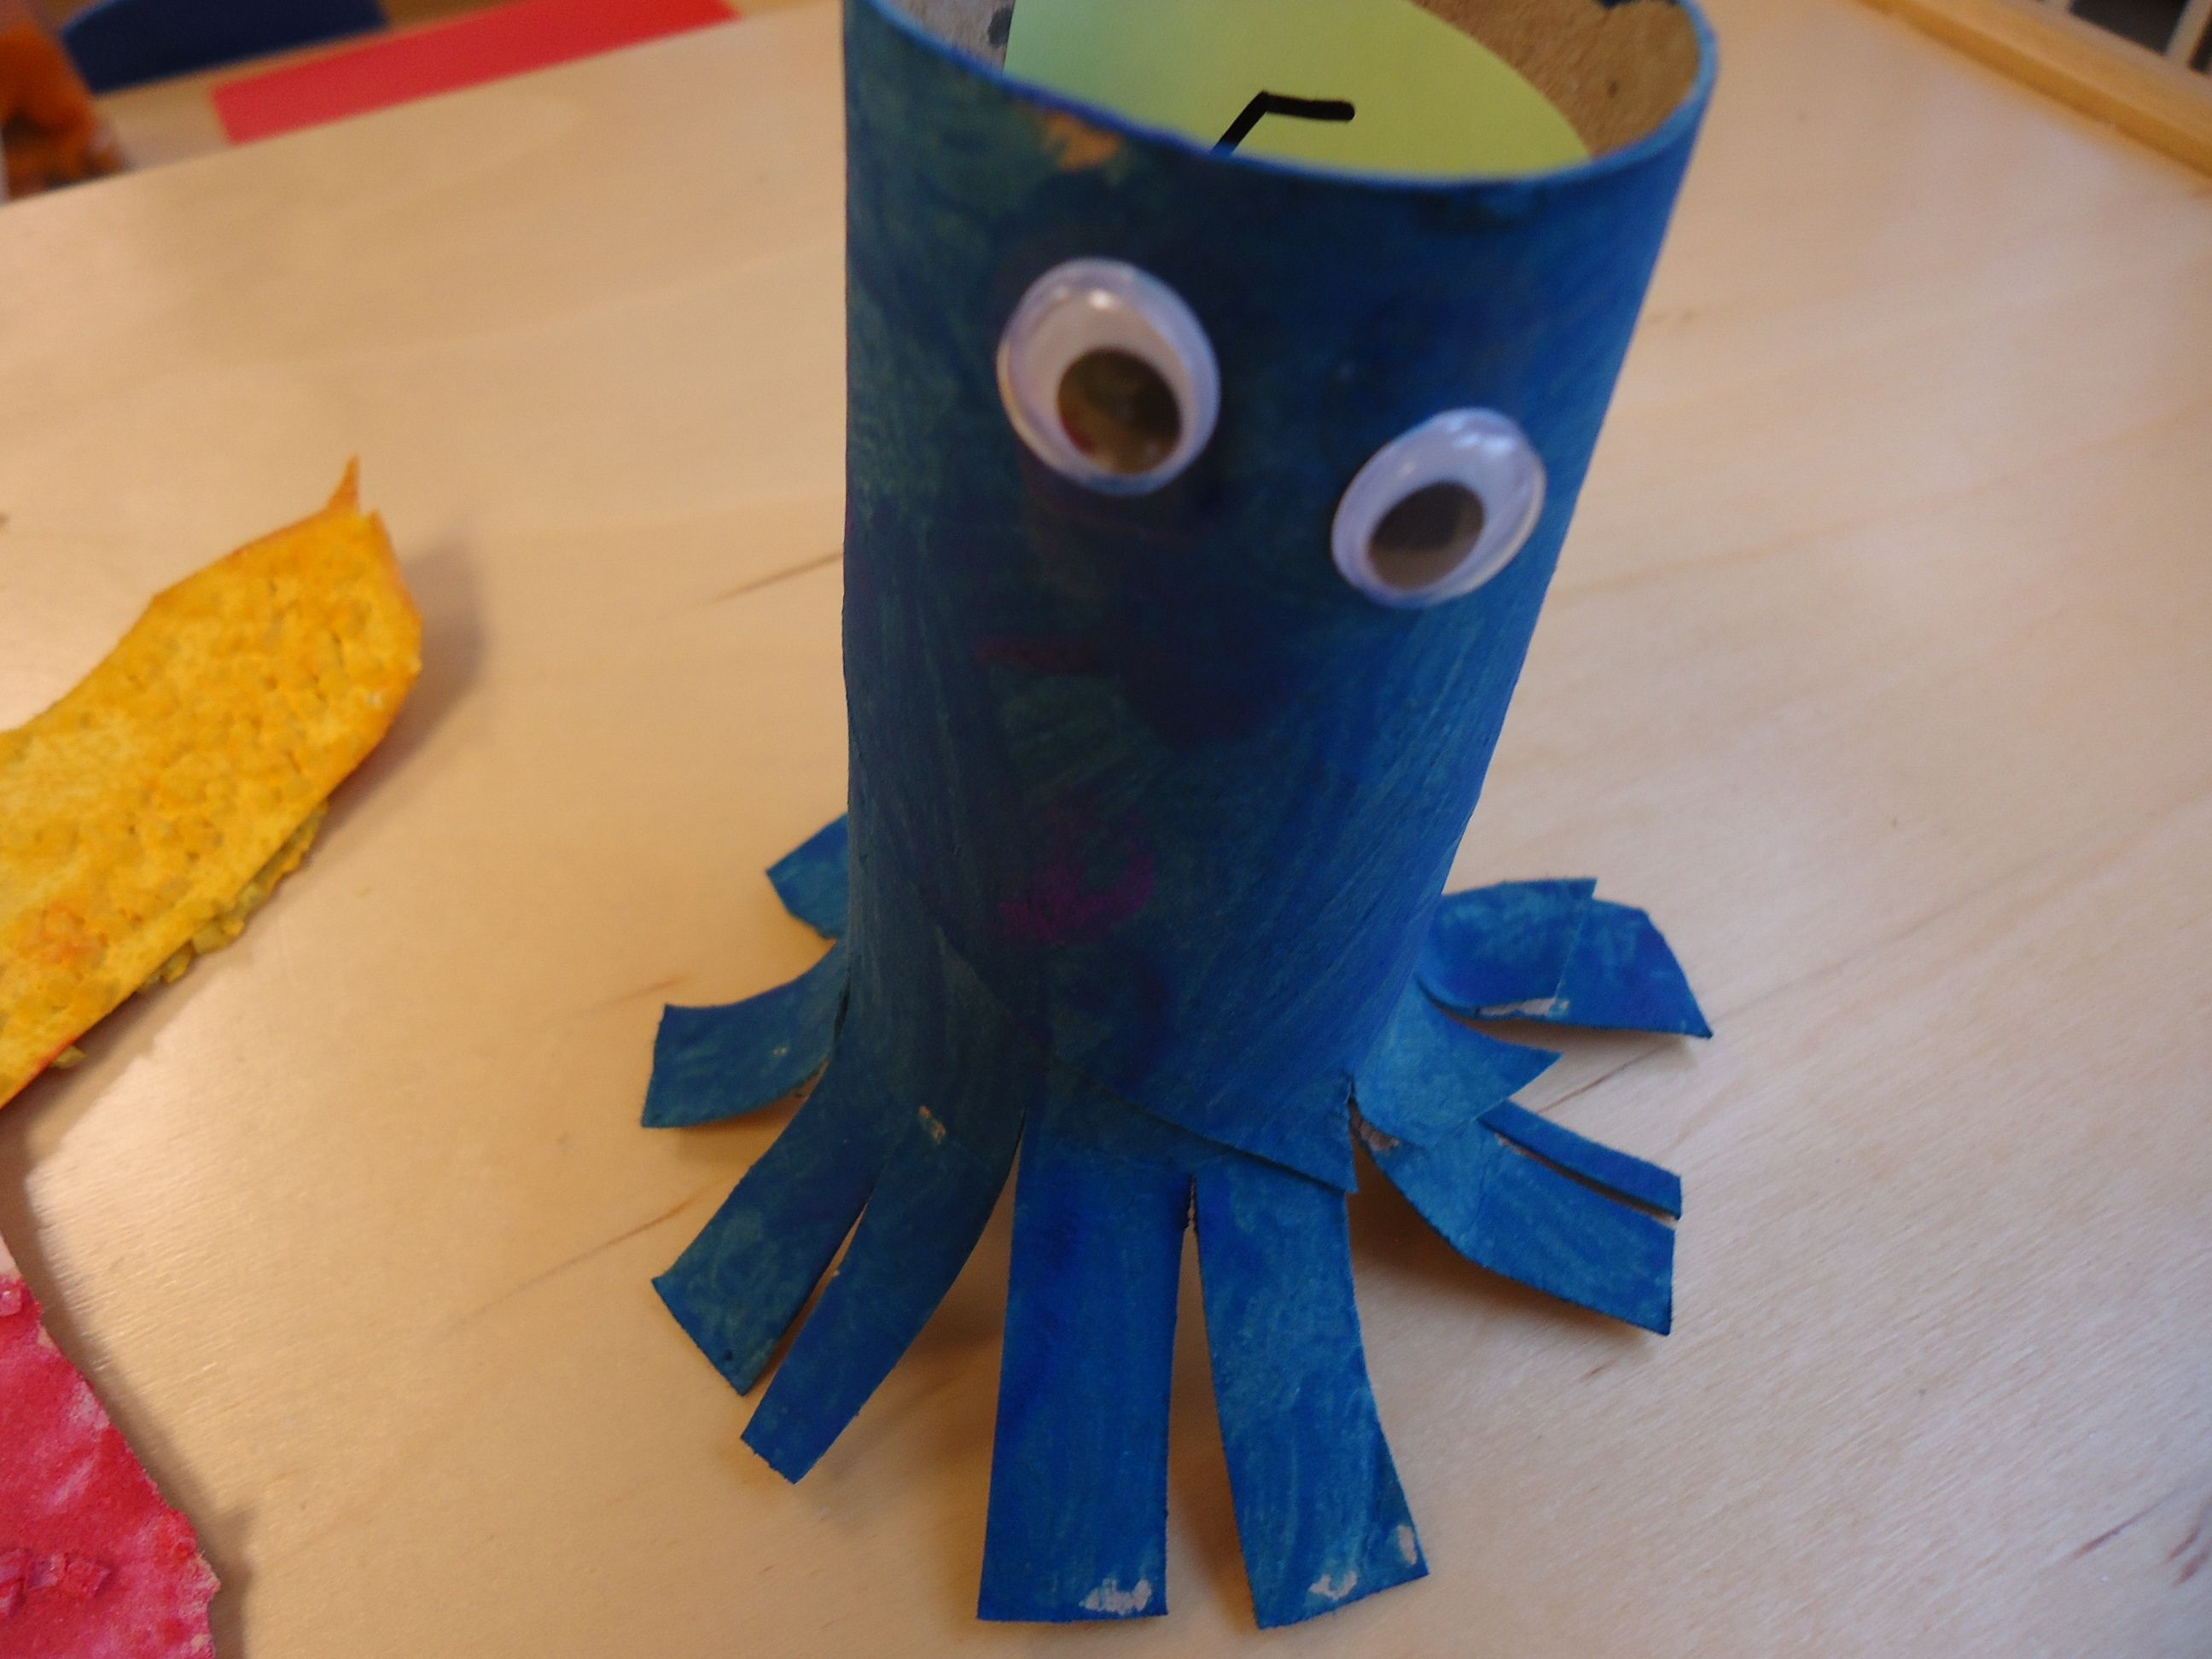 Under The Sea Octopus Art The Children Cut The Bottom Of